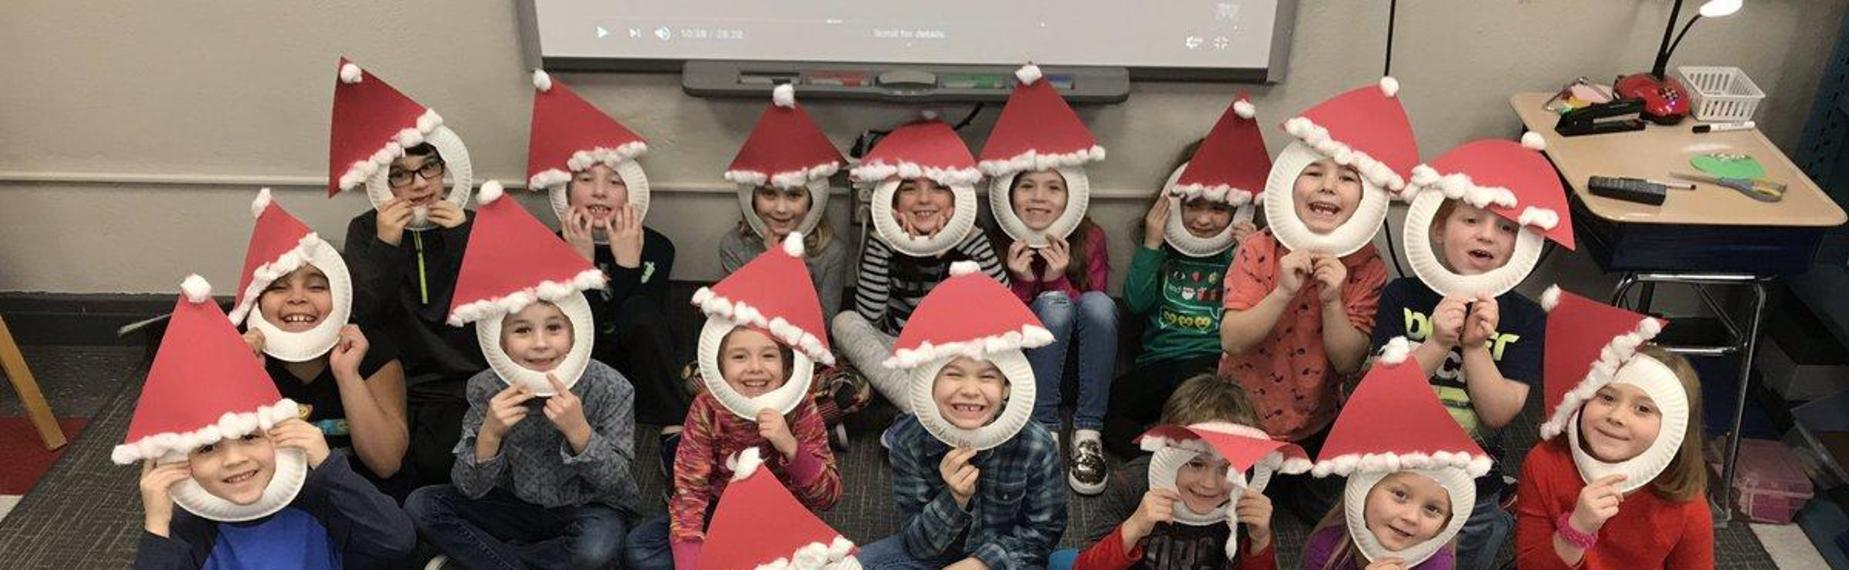 First grade students getting ready for Christmas